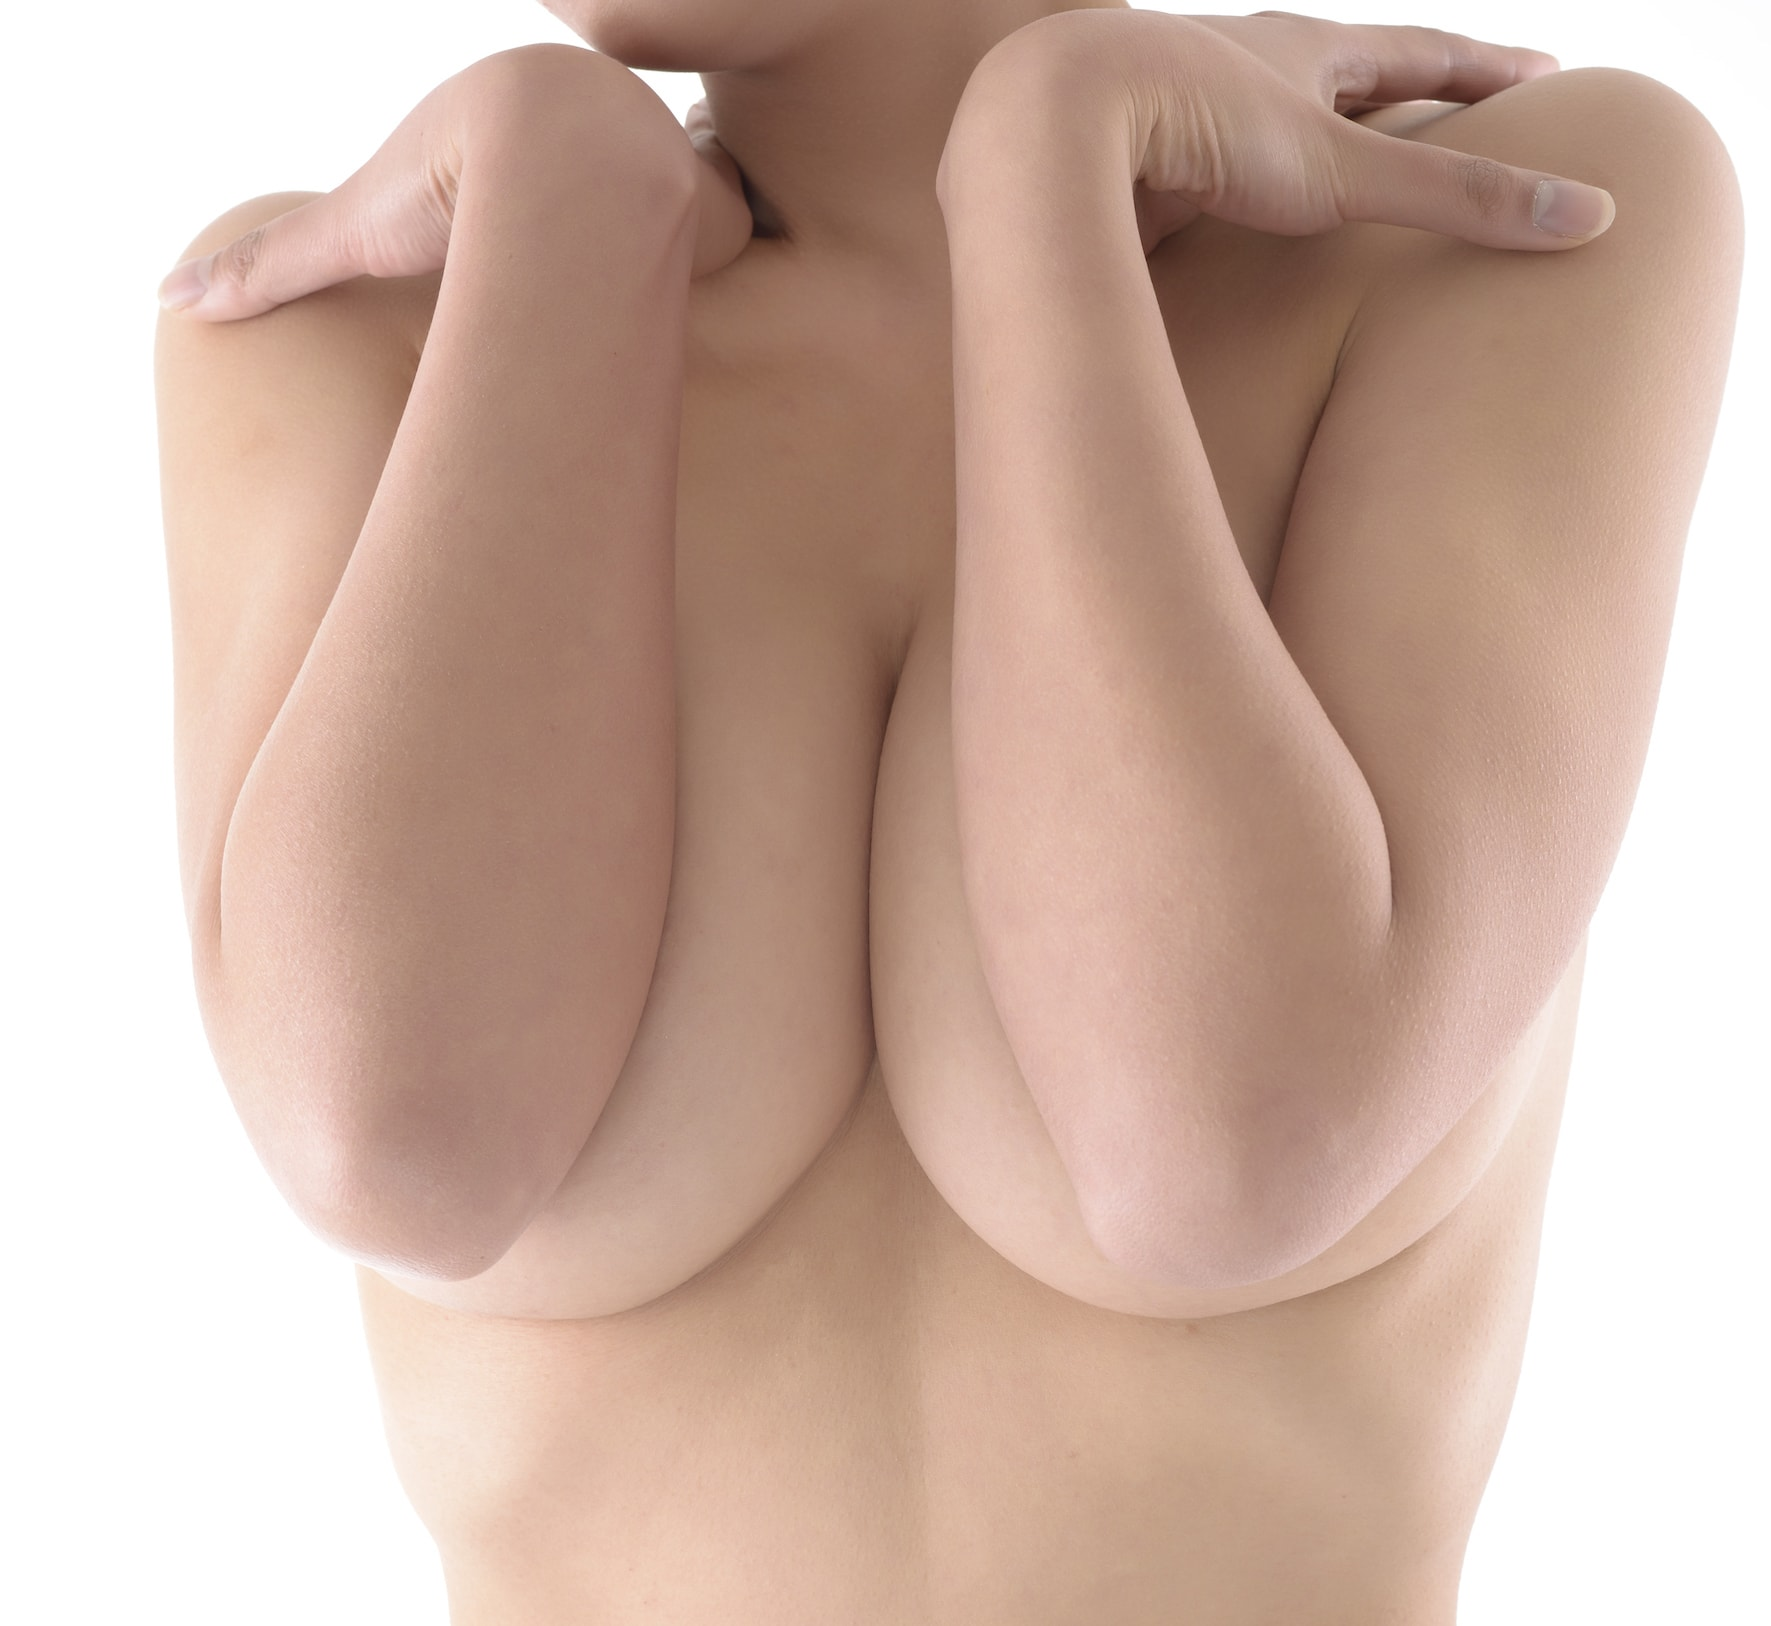 breast reduction surgery cost